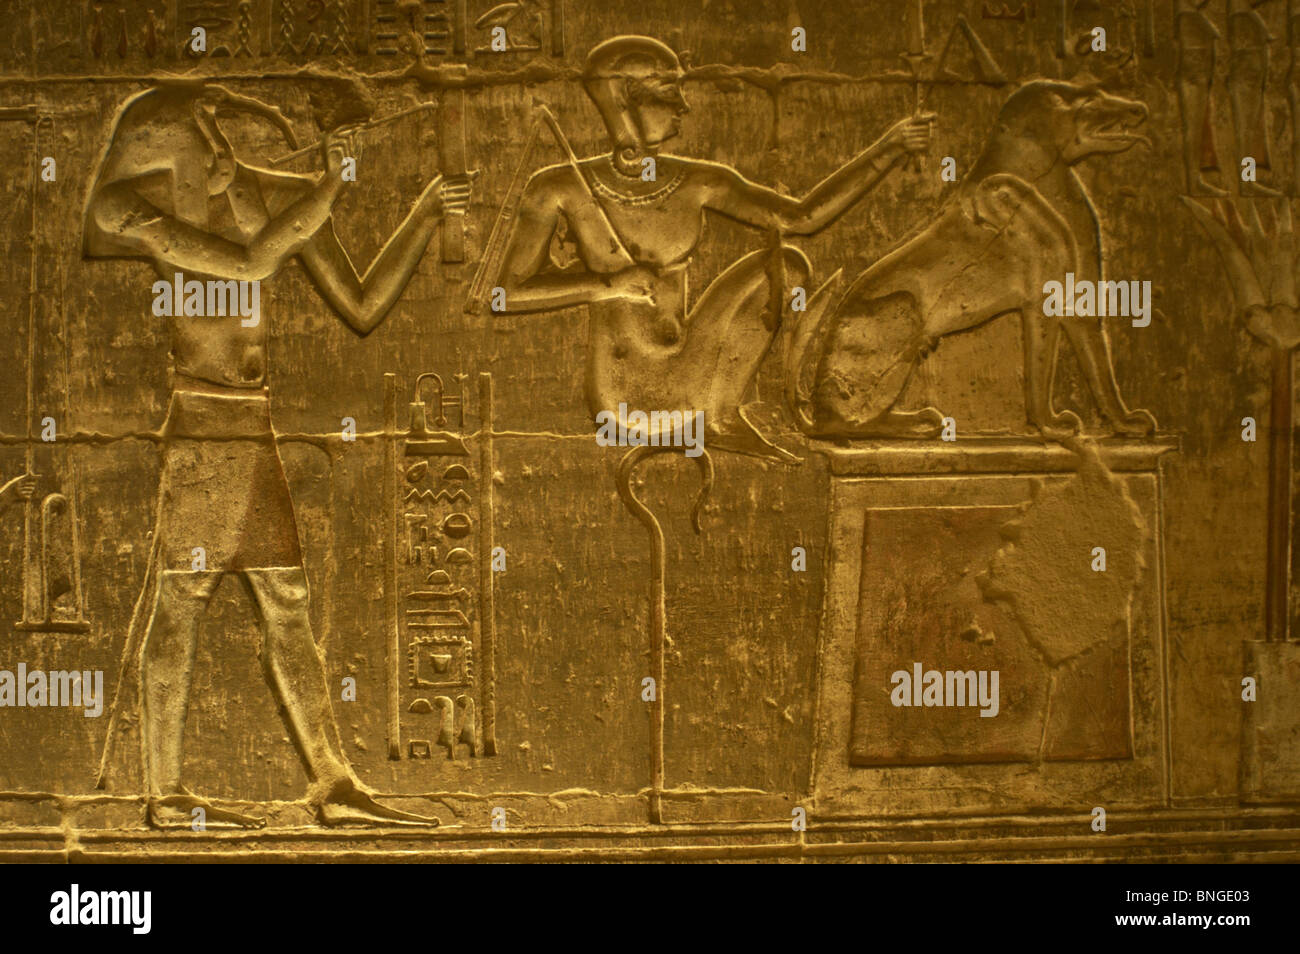 Ptolemaic temple of Hathor and Maat. Gods Thoth, Horus the Younger and Ammit. Deir el-Medina. Egypt. - Stock Image